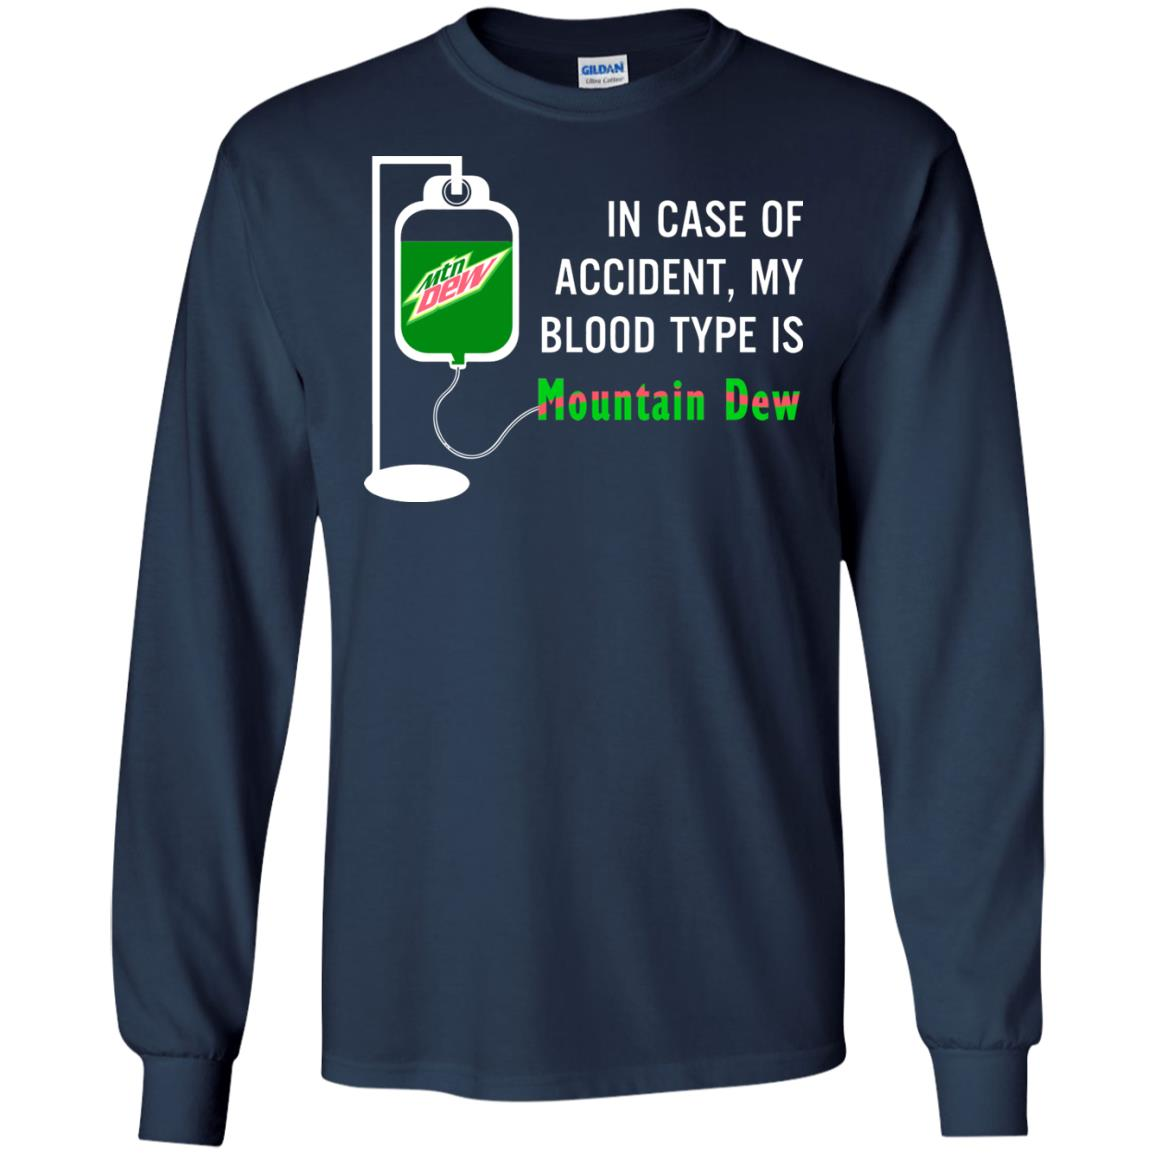 image 495 - In Case Of Accident My Blood Type Is Mountain Dew Shirt